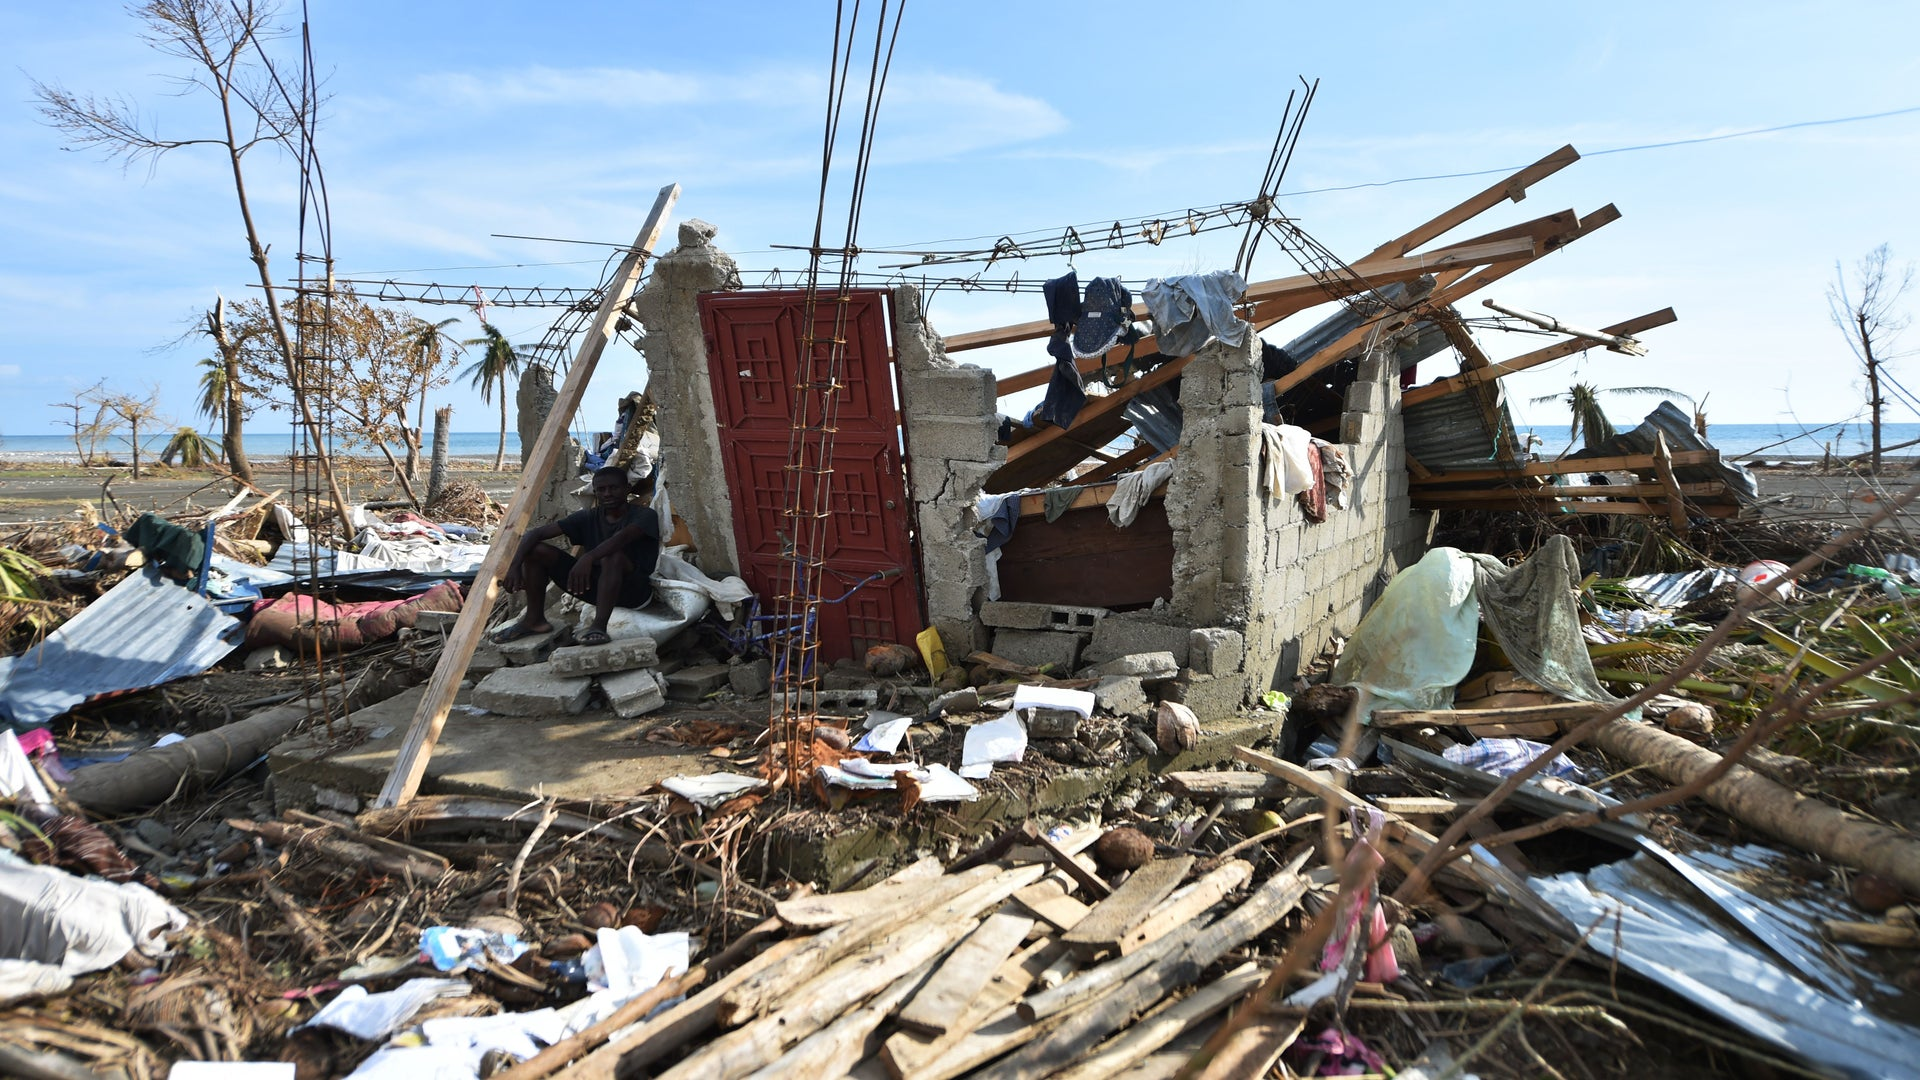 UN Appeals To World For Aid In The Wake Of Haiti's Recovery Efforts